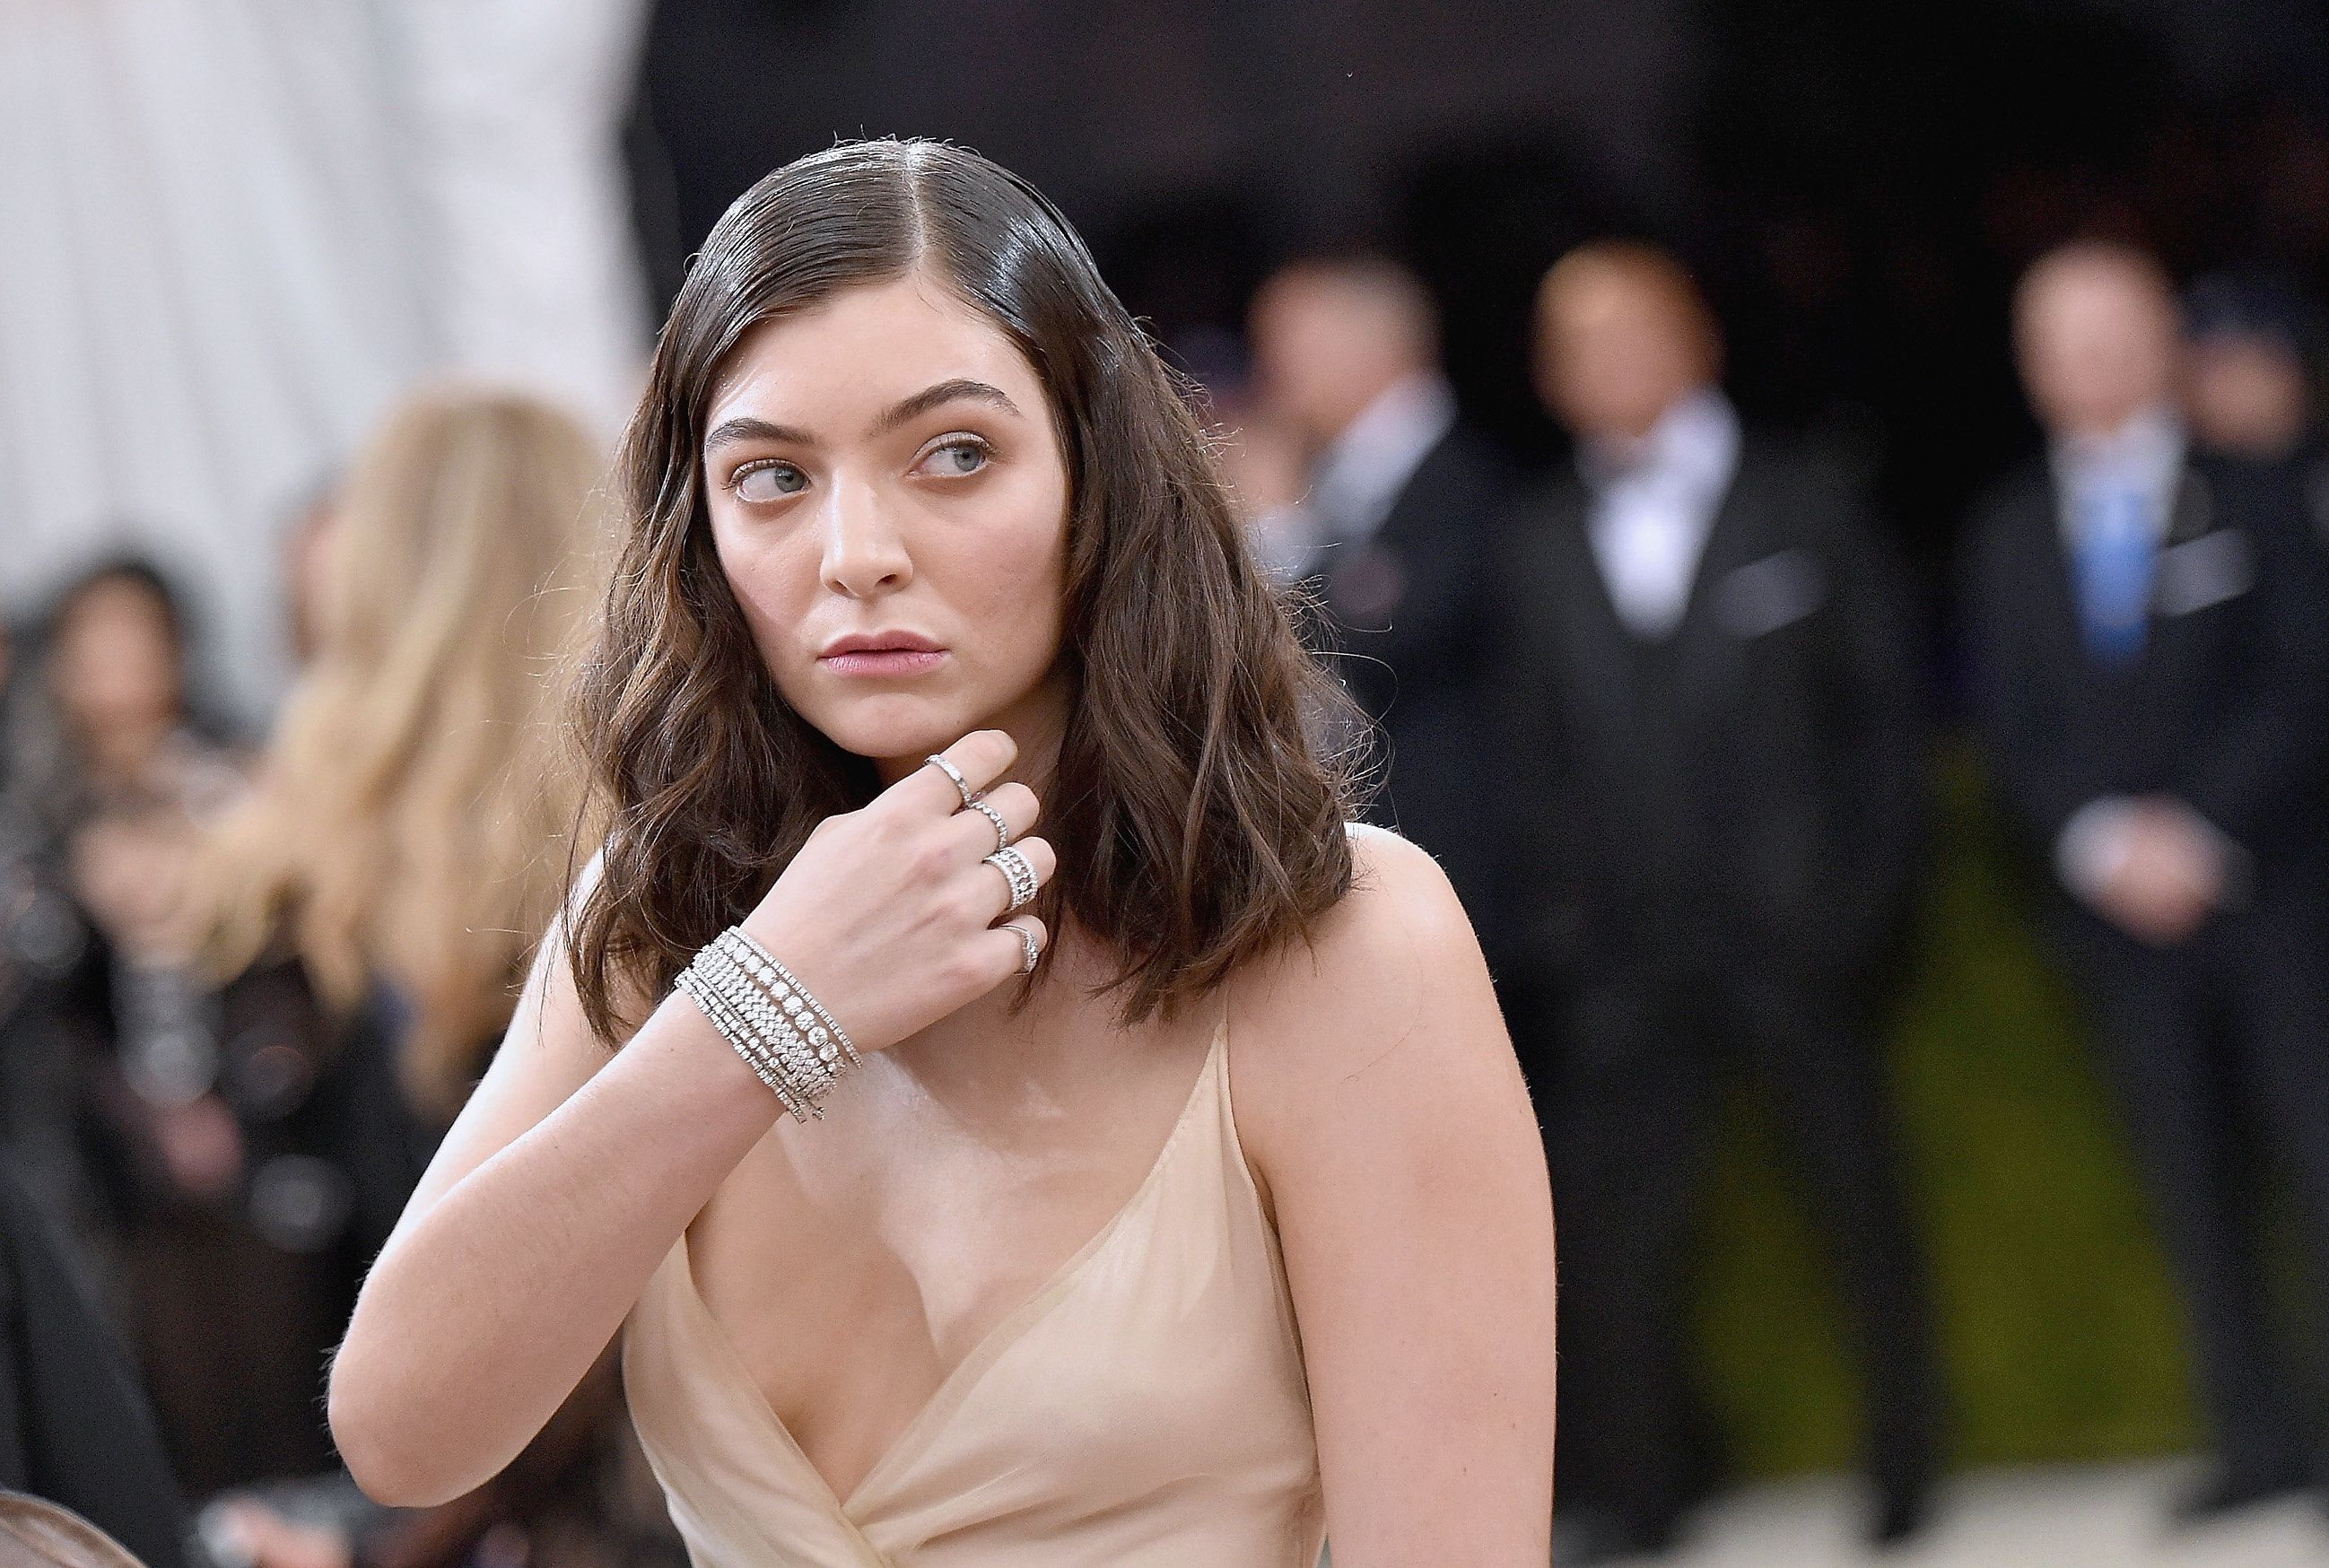 Lorde's face right